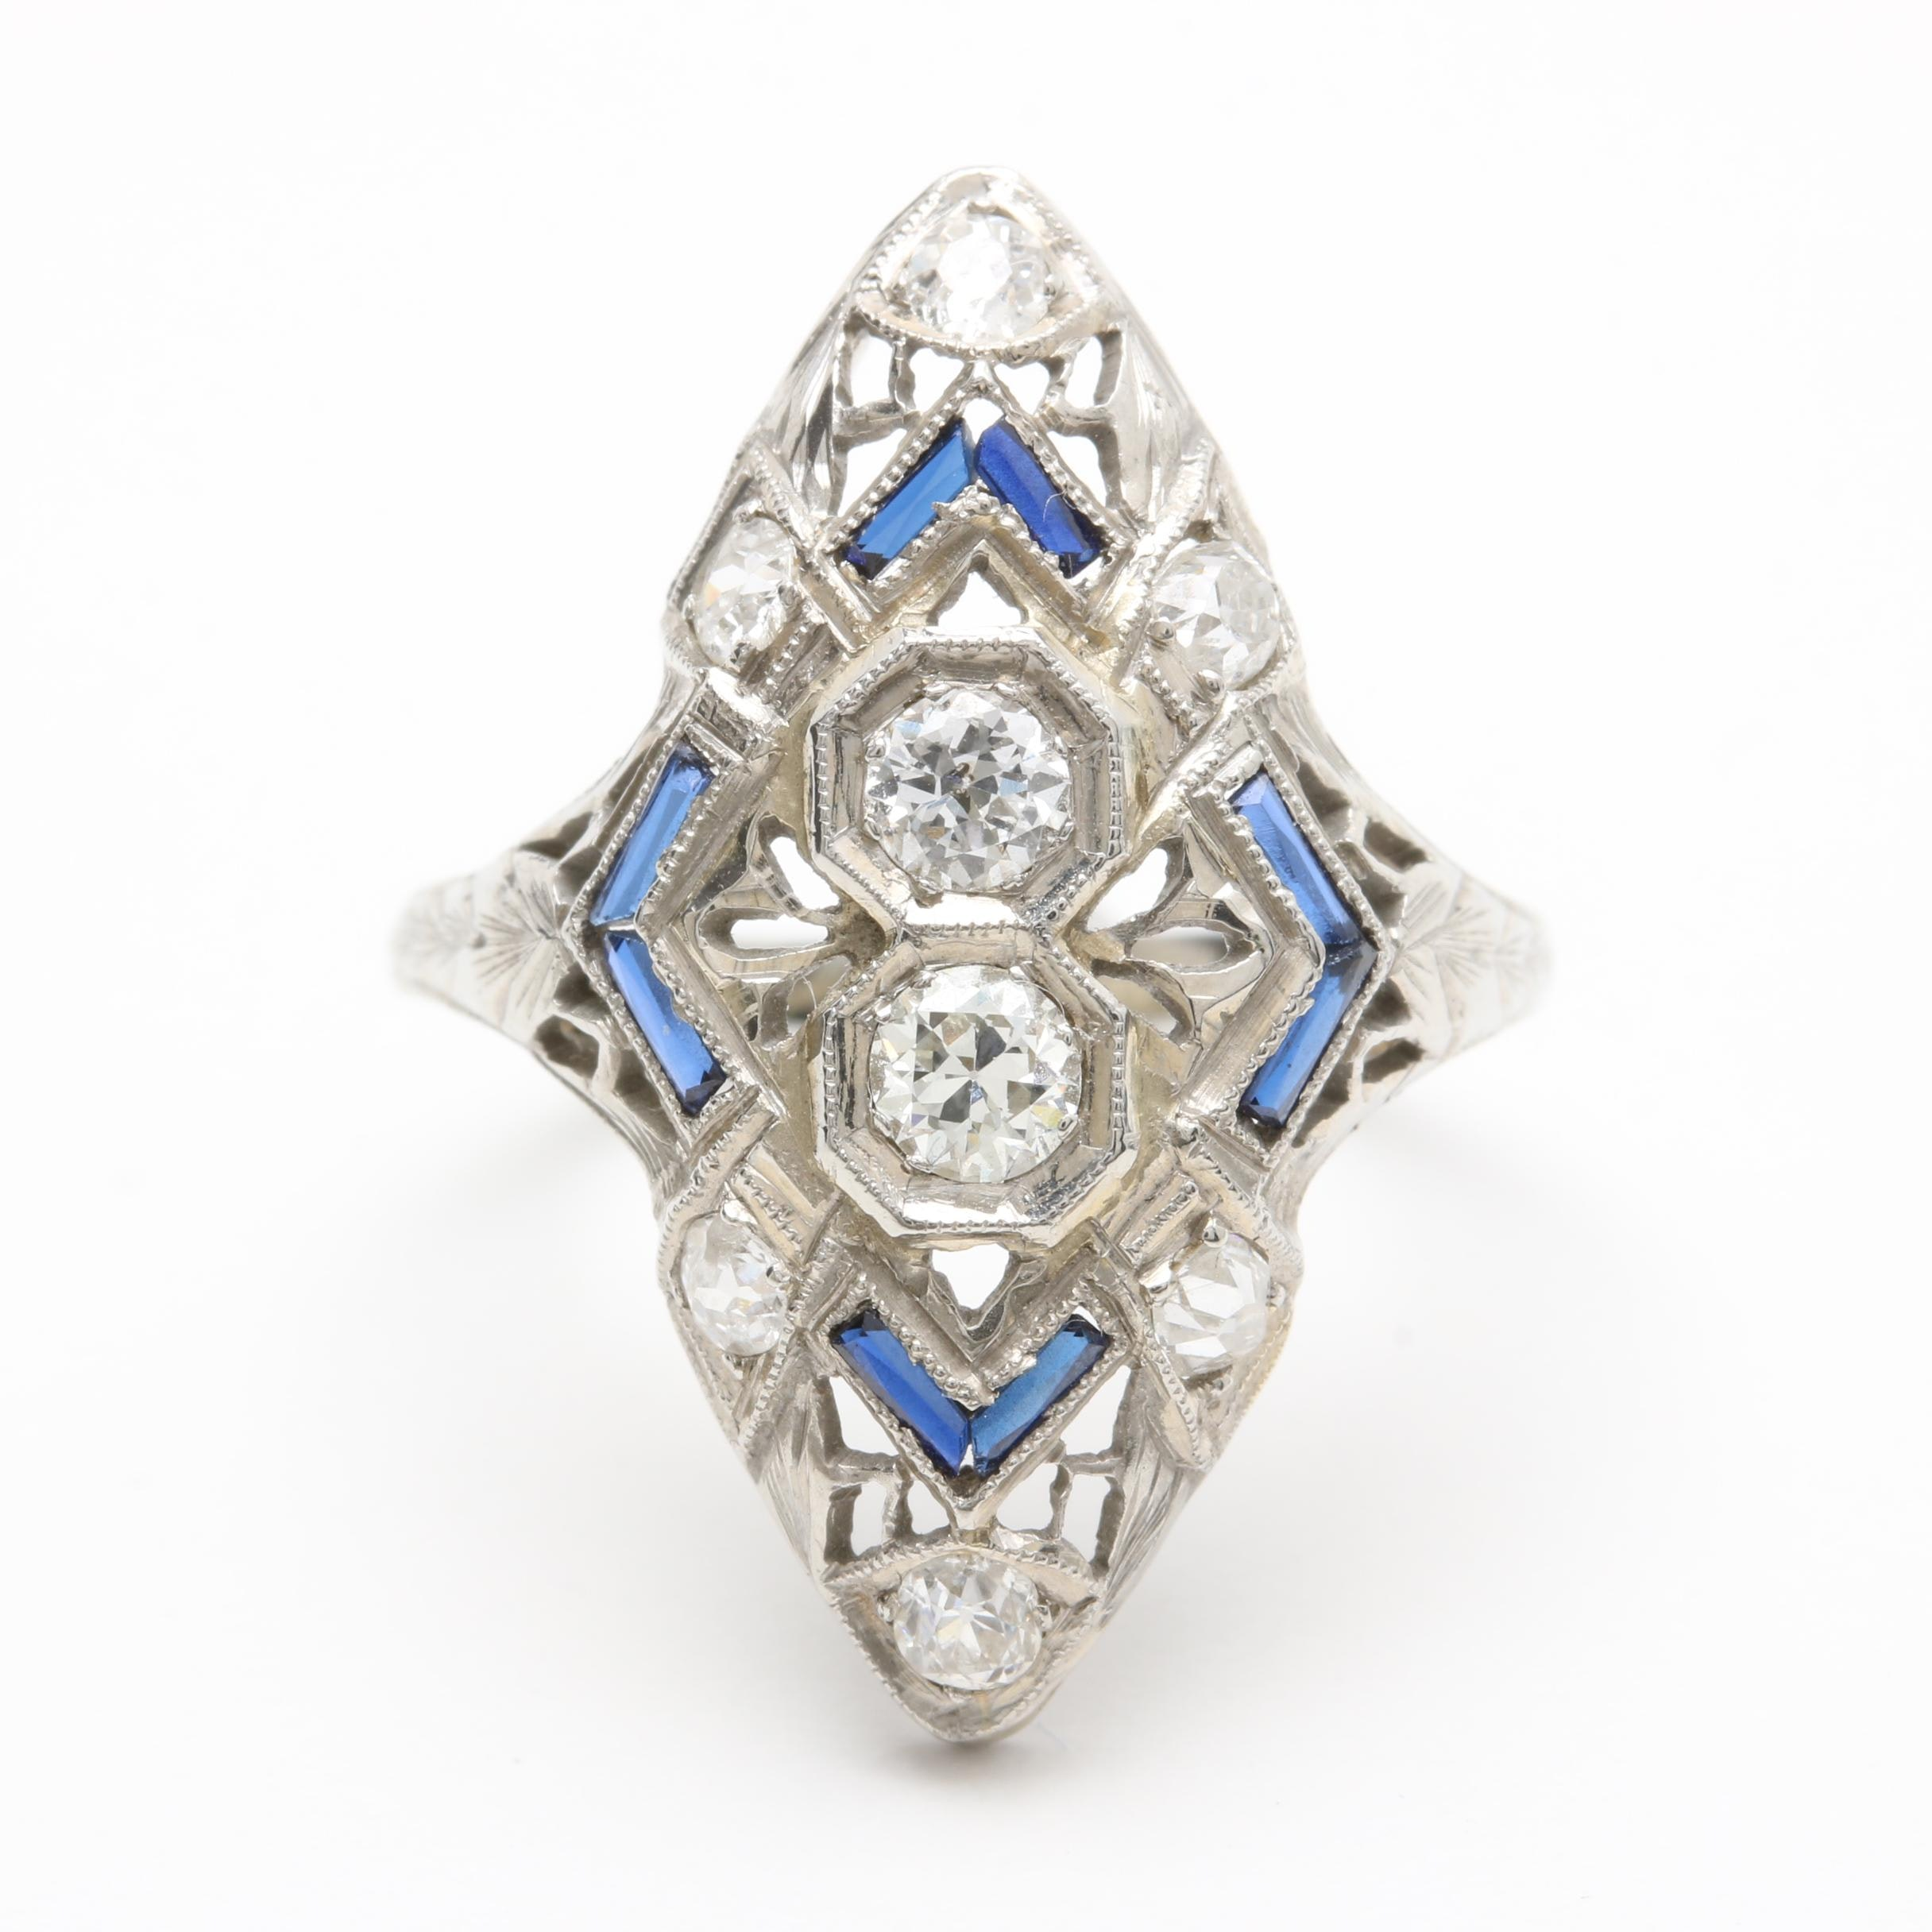 Edwardian 18K White Gold Diamond and Synthetic Sapphire Ring